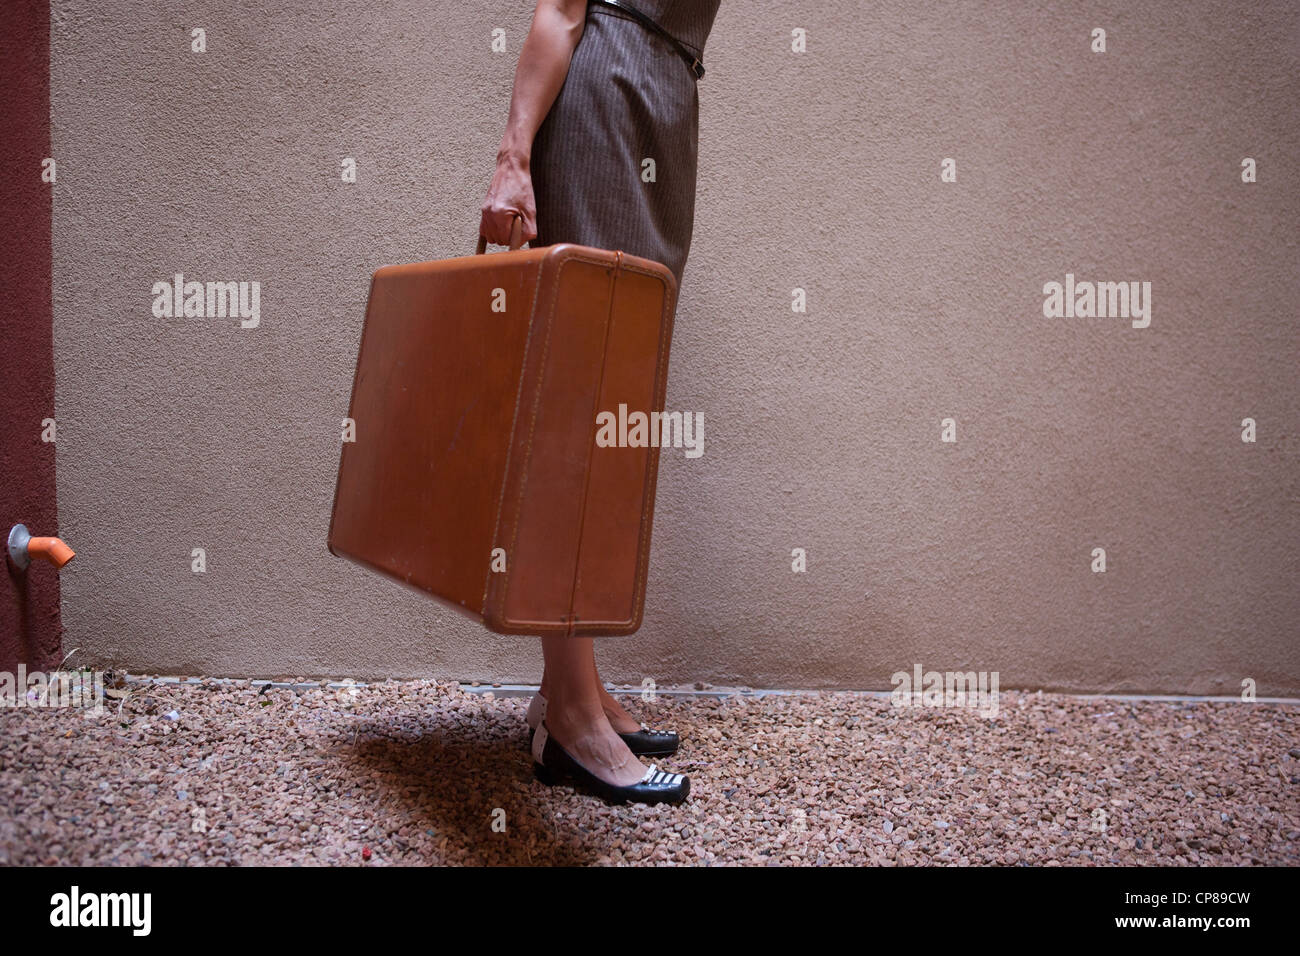 Woman carrying a vintage suitcase. - Stock Image